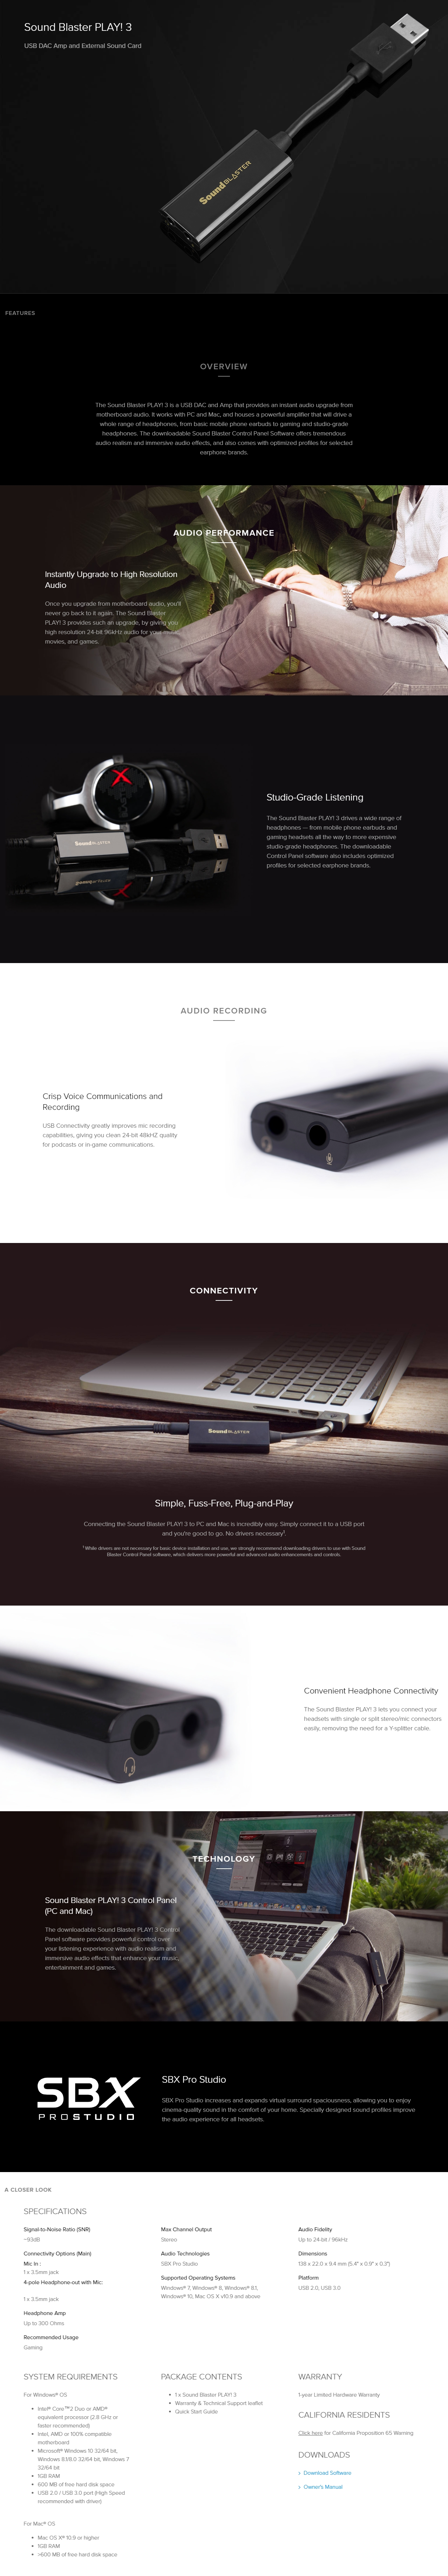 A large marketing image providing additional information about the product Creative Play! 3 USB External DAC Sound Card - Additional alt info not provided